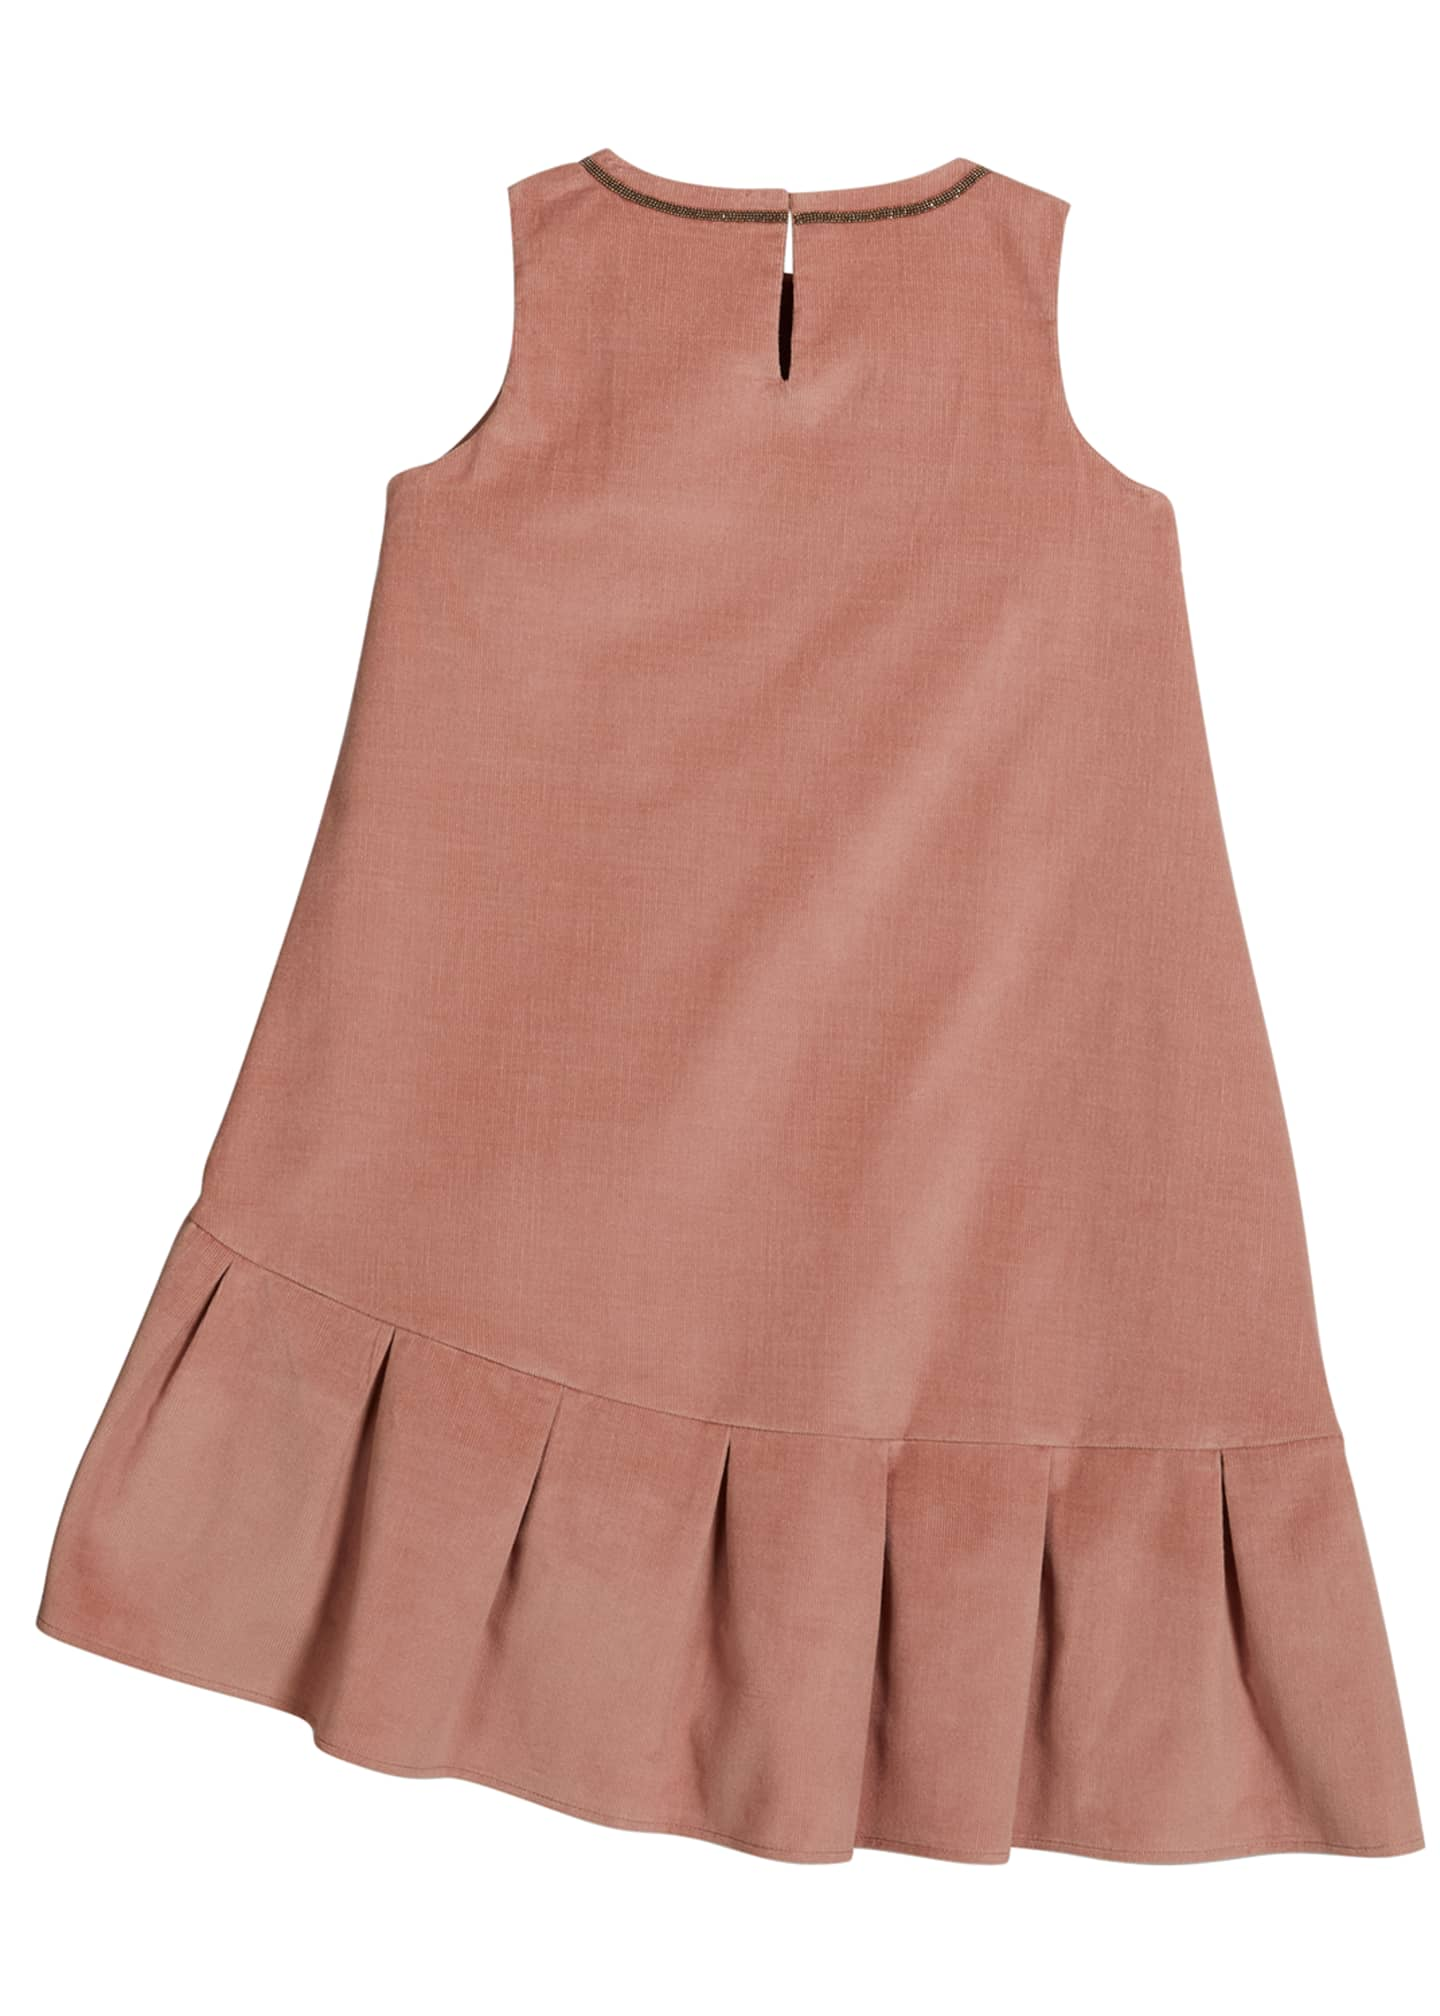 Image 2 of 2: Girl's Corduroy Monili Sleeveless Dress, Size 4-6